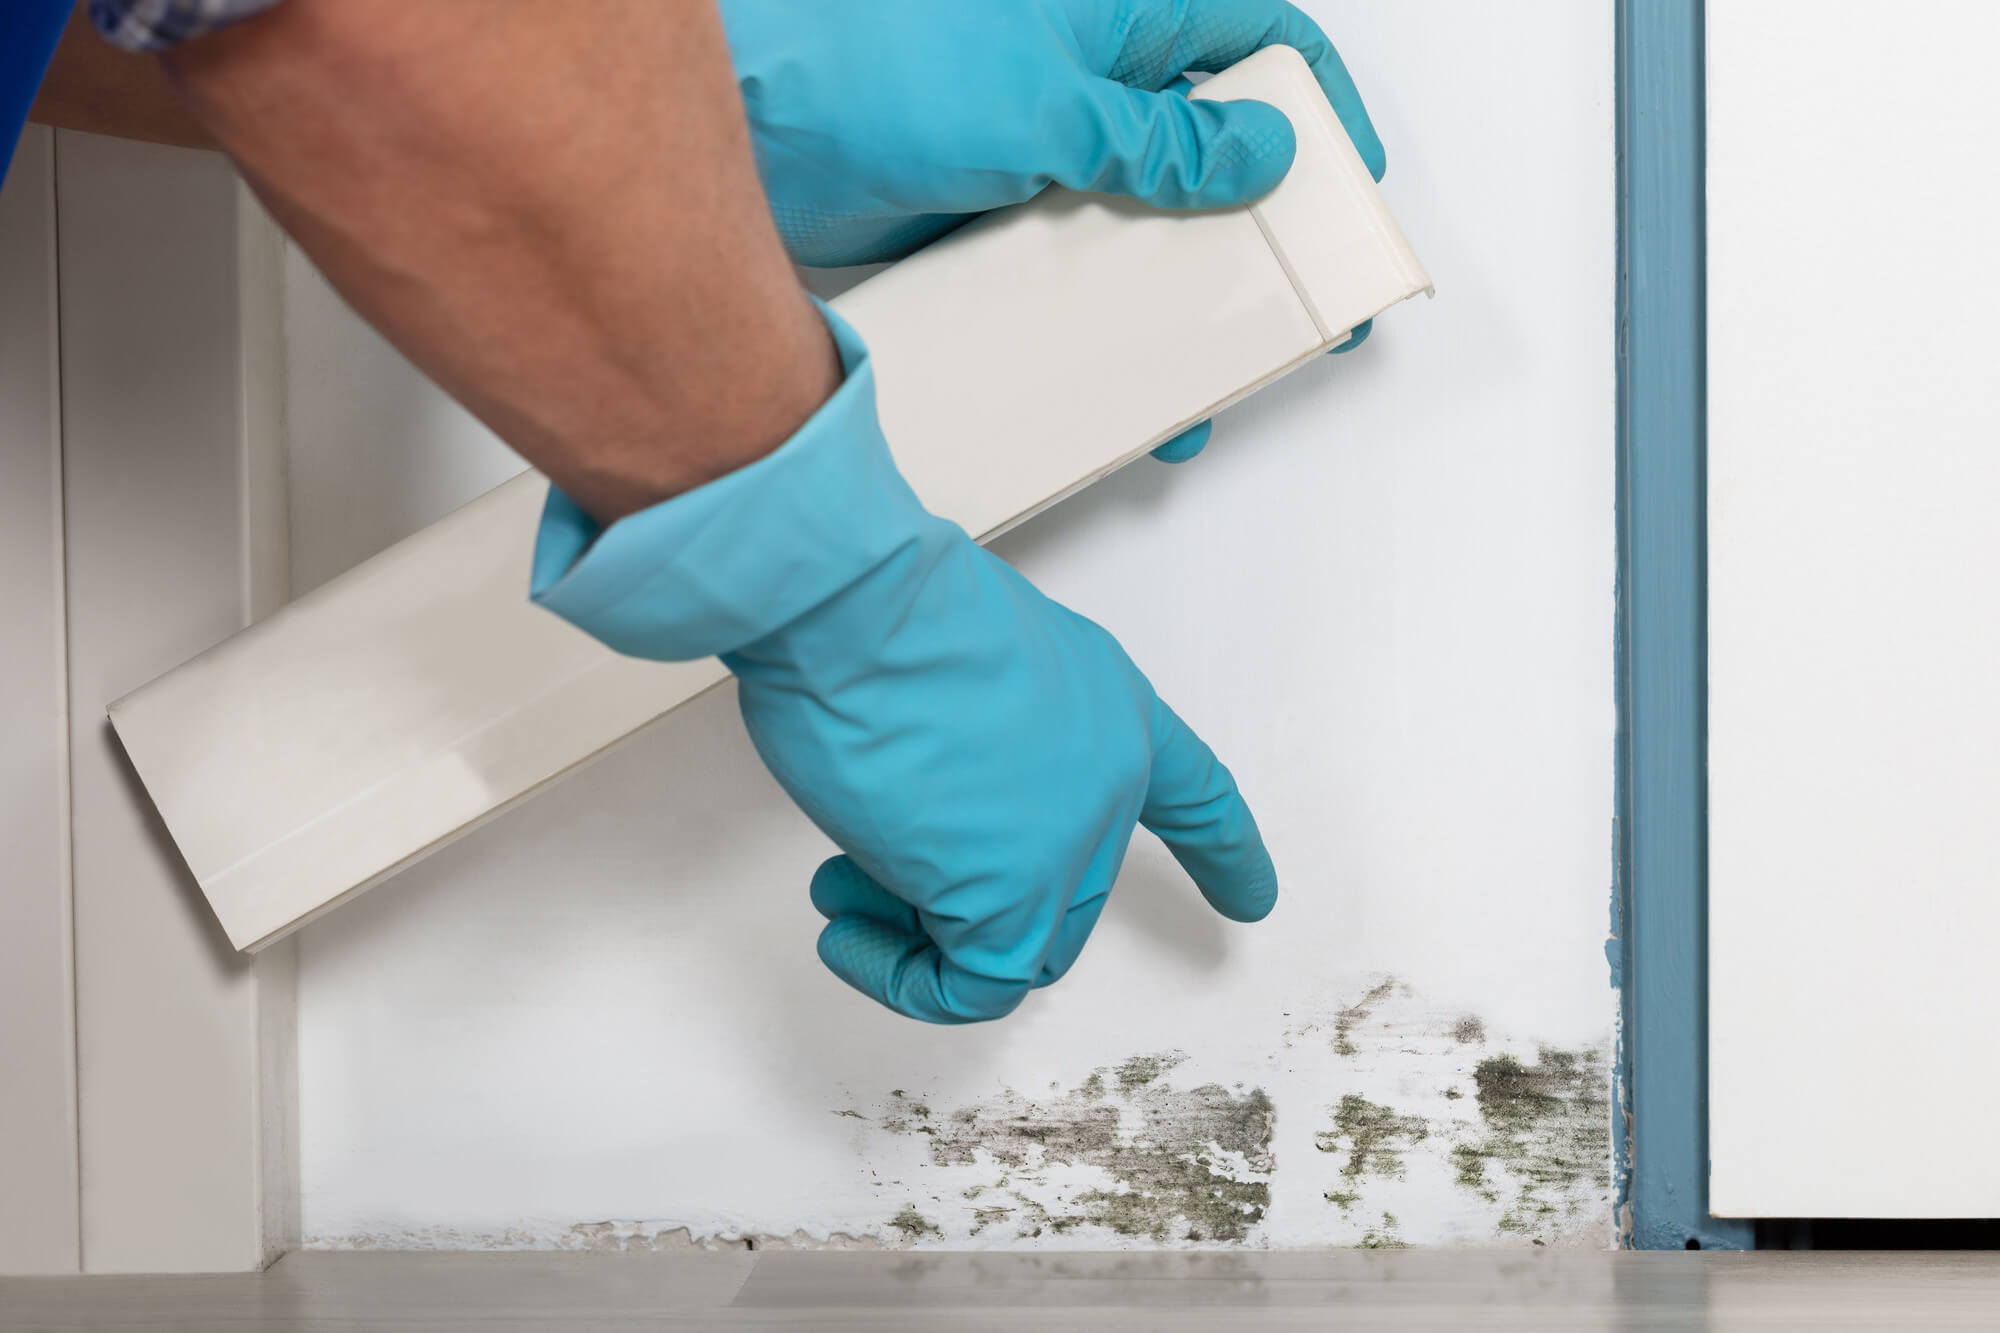 Cleaning mold on wall